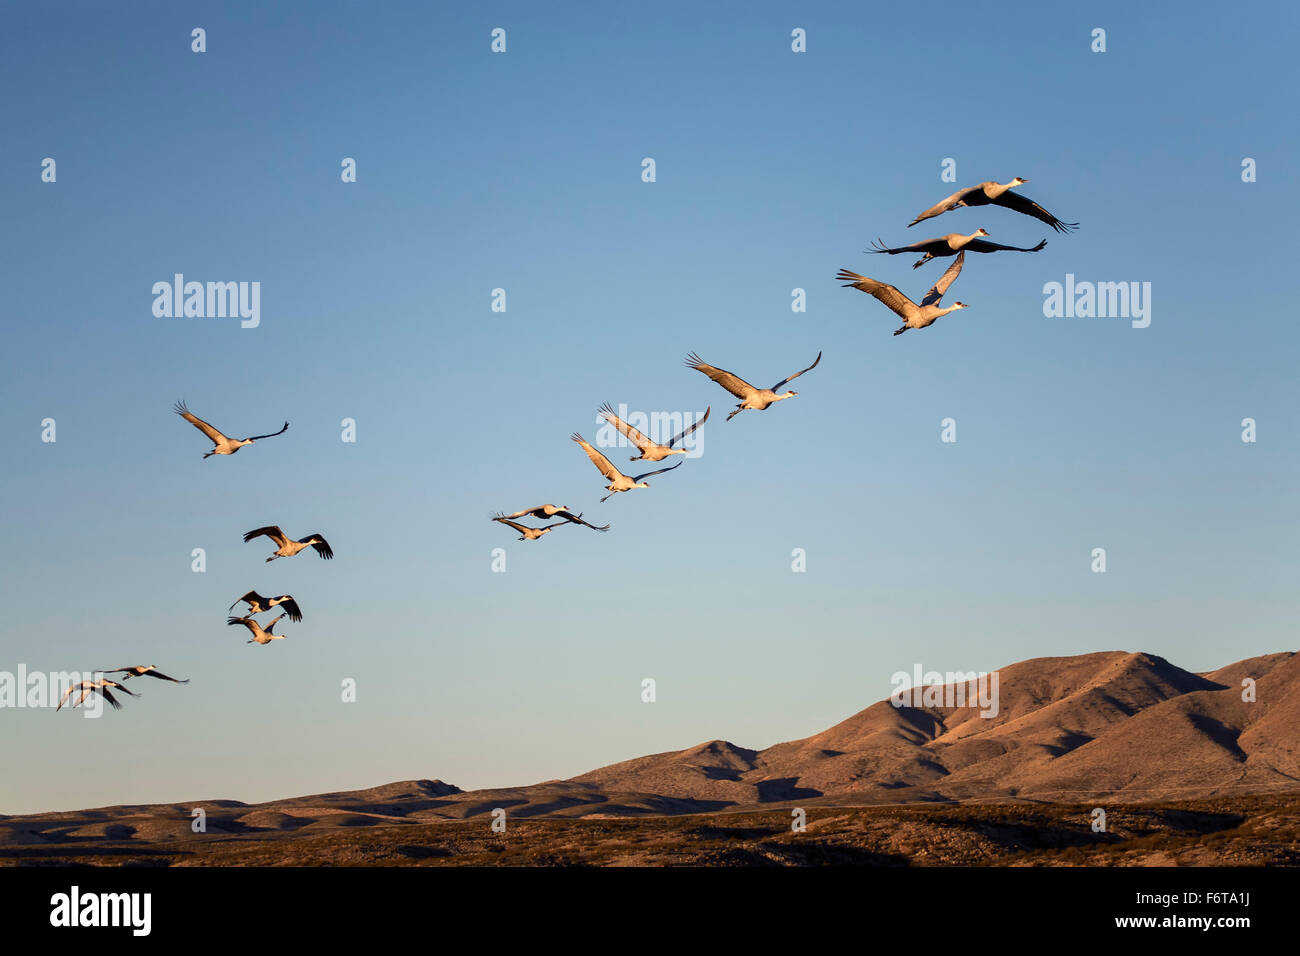 Sandhill Cranes (Grus canadensis) flying in formation, Bosque del Apache National Wildlife Refuge, near Socorro, - Stock Image